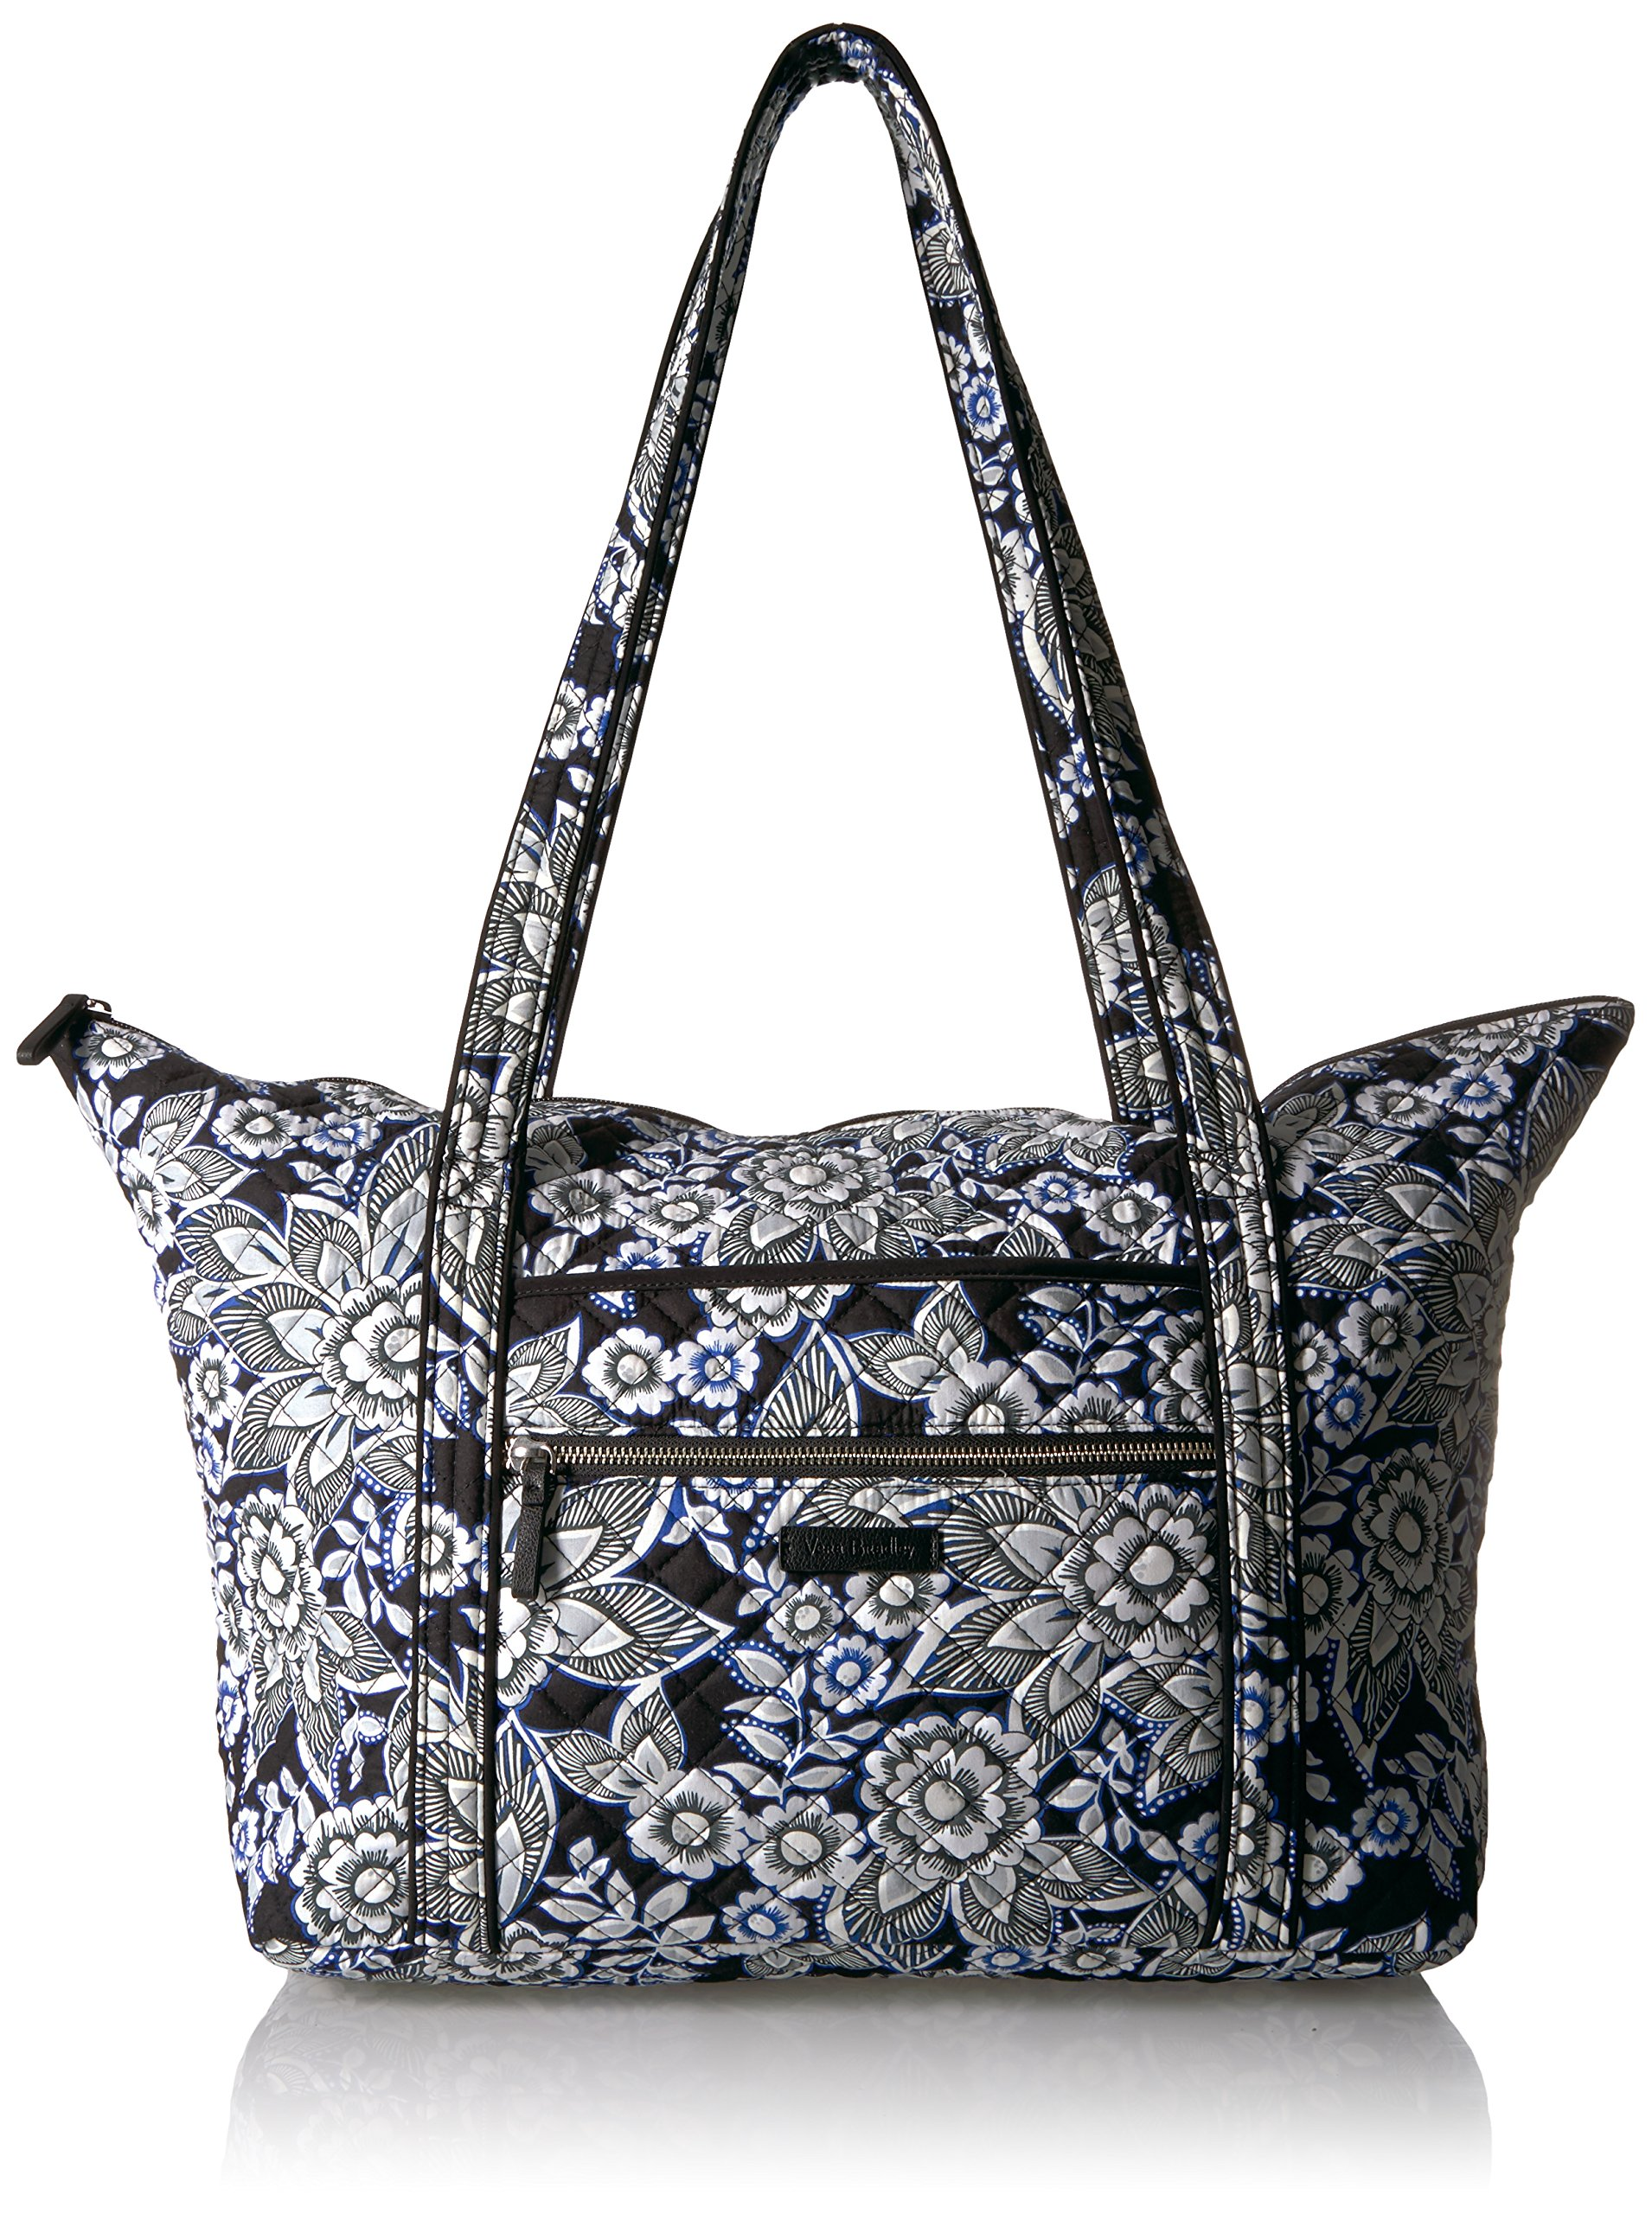 Vera Bradley Women's Iconic Miller Travel Bag-Signature by Vera Bradley